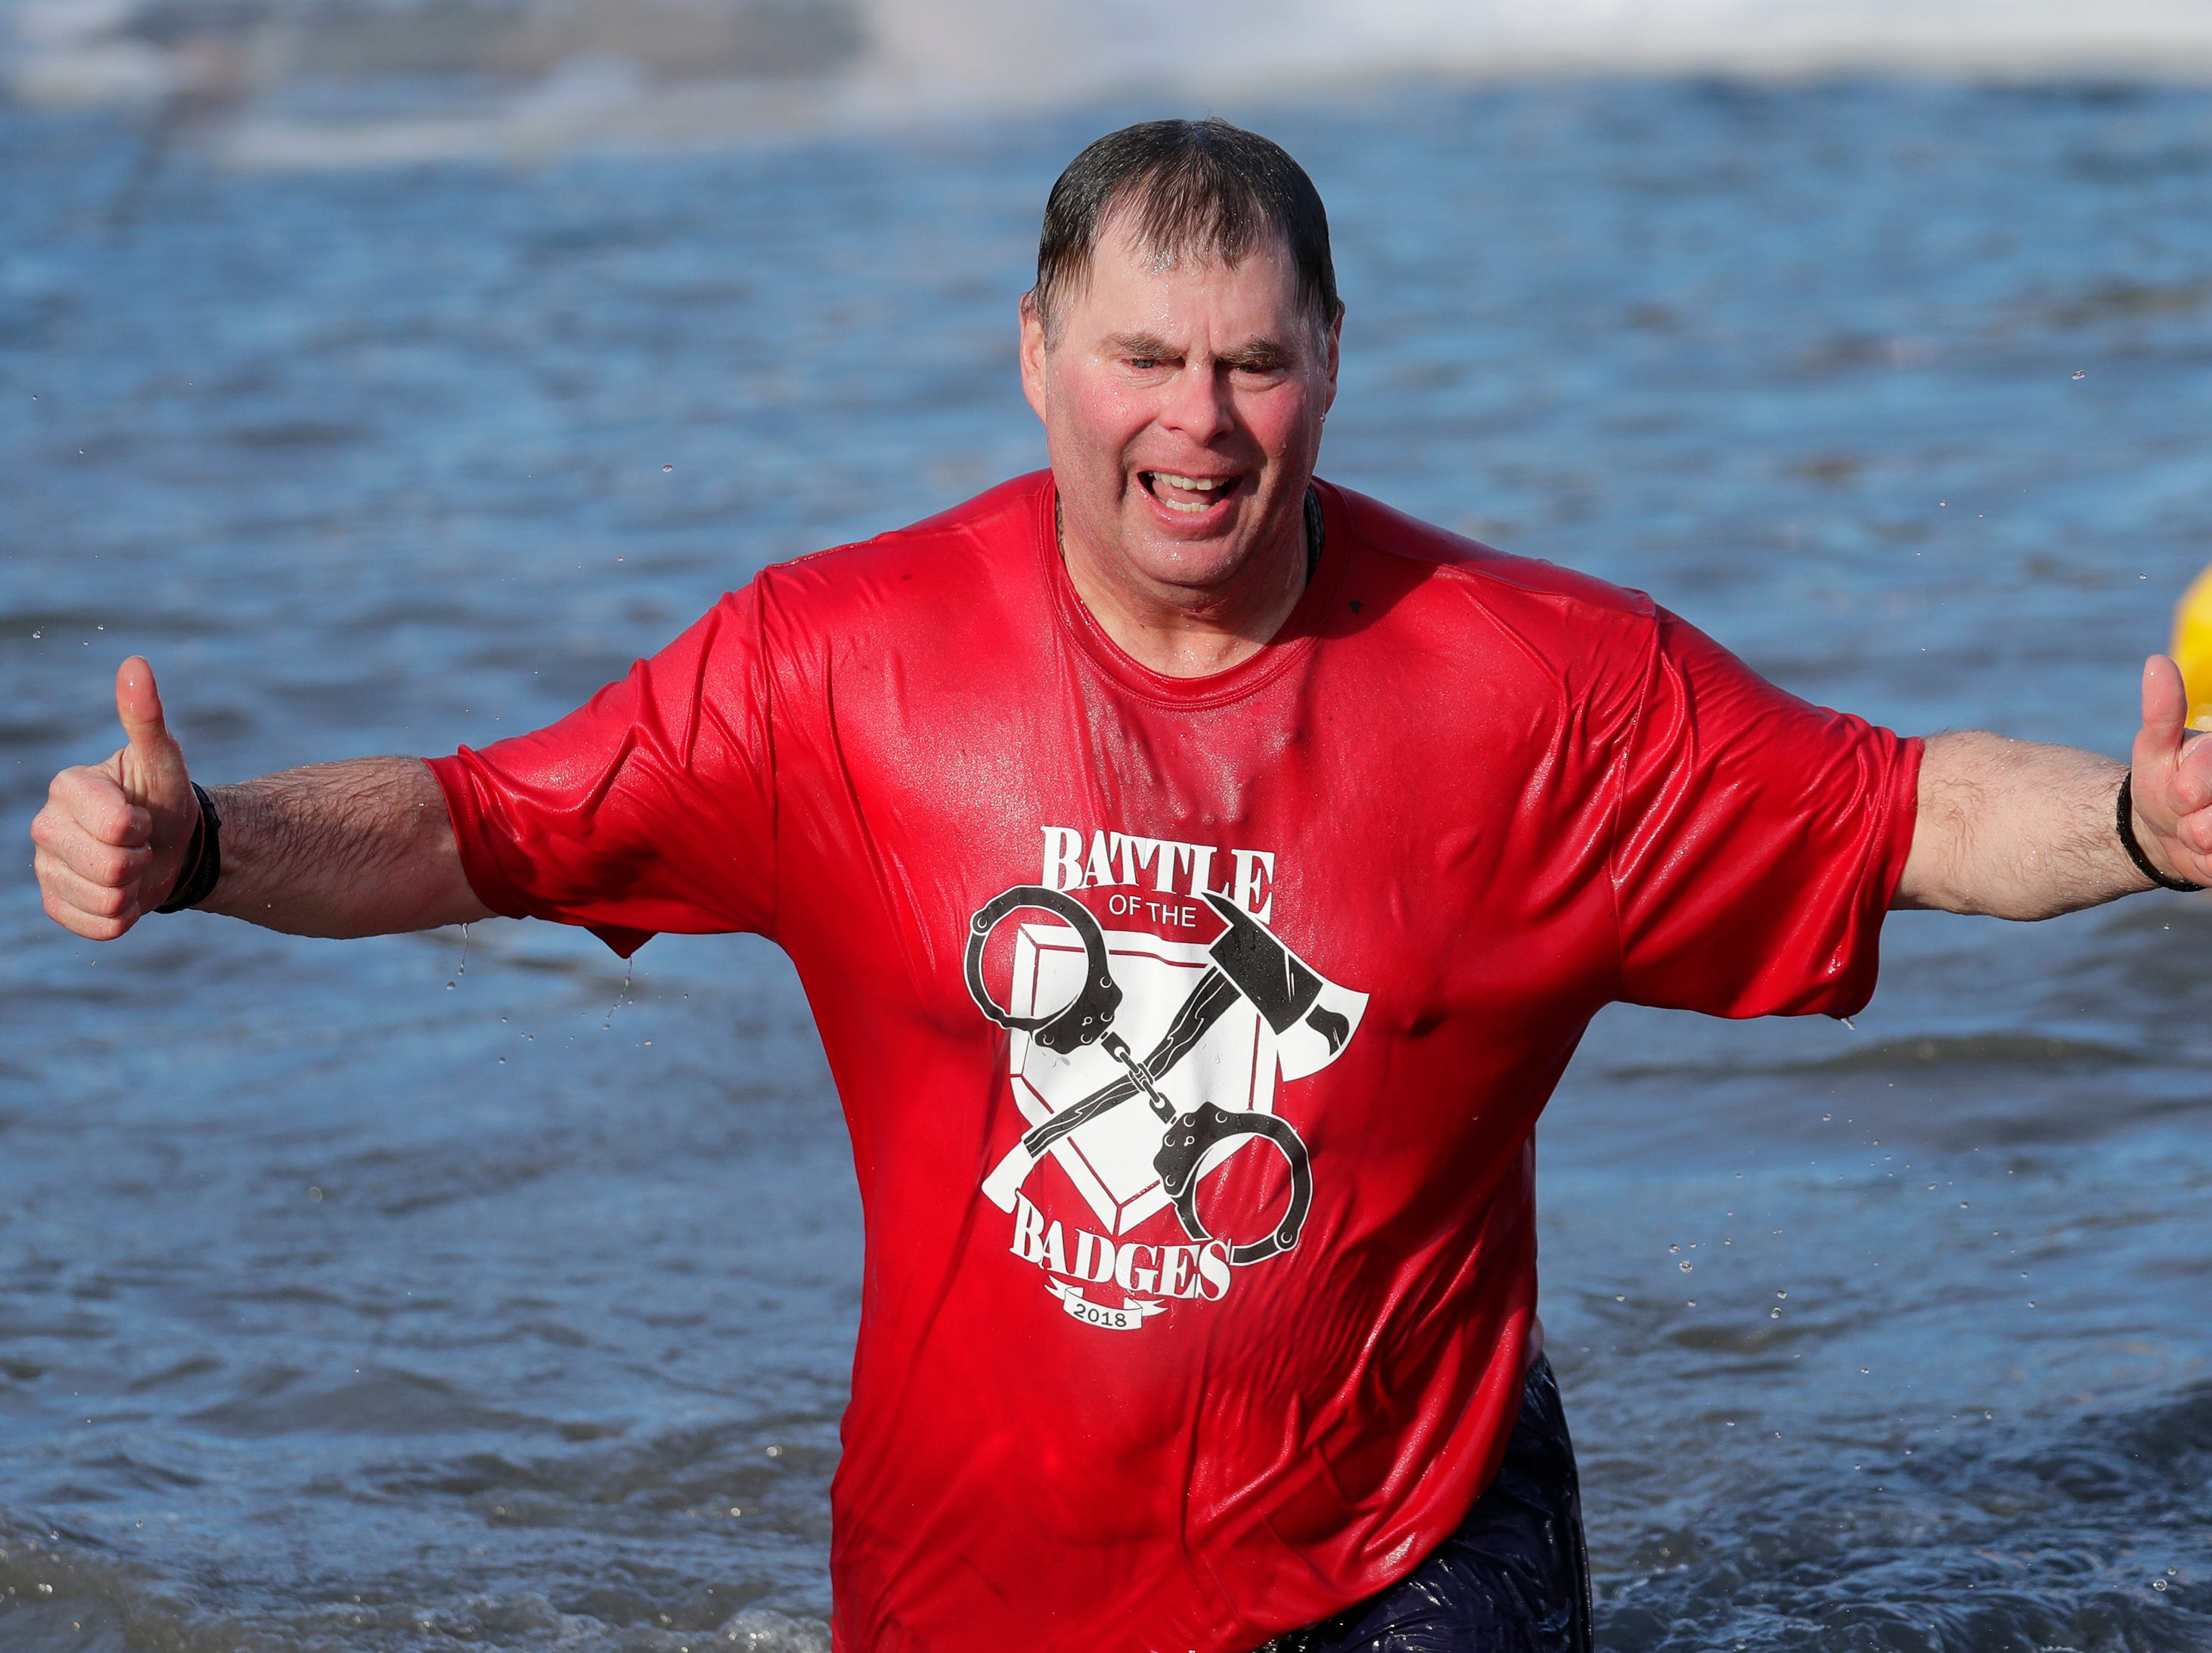 Lt. Pete Jungers of the Waupaca Fire Department gives a thumbs up during the Polar Bear Plunge Tuesday, January 1, 2019, at Becker Marine on Lime Kiln Lake in Waupaca, Wis. Dan Powers/USA TODAY NETWORK-Wisconsin